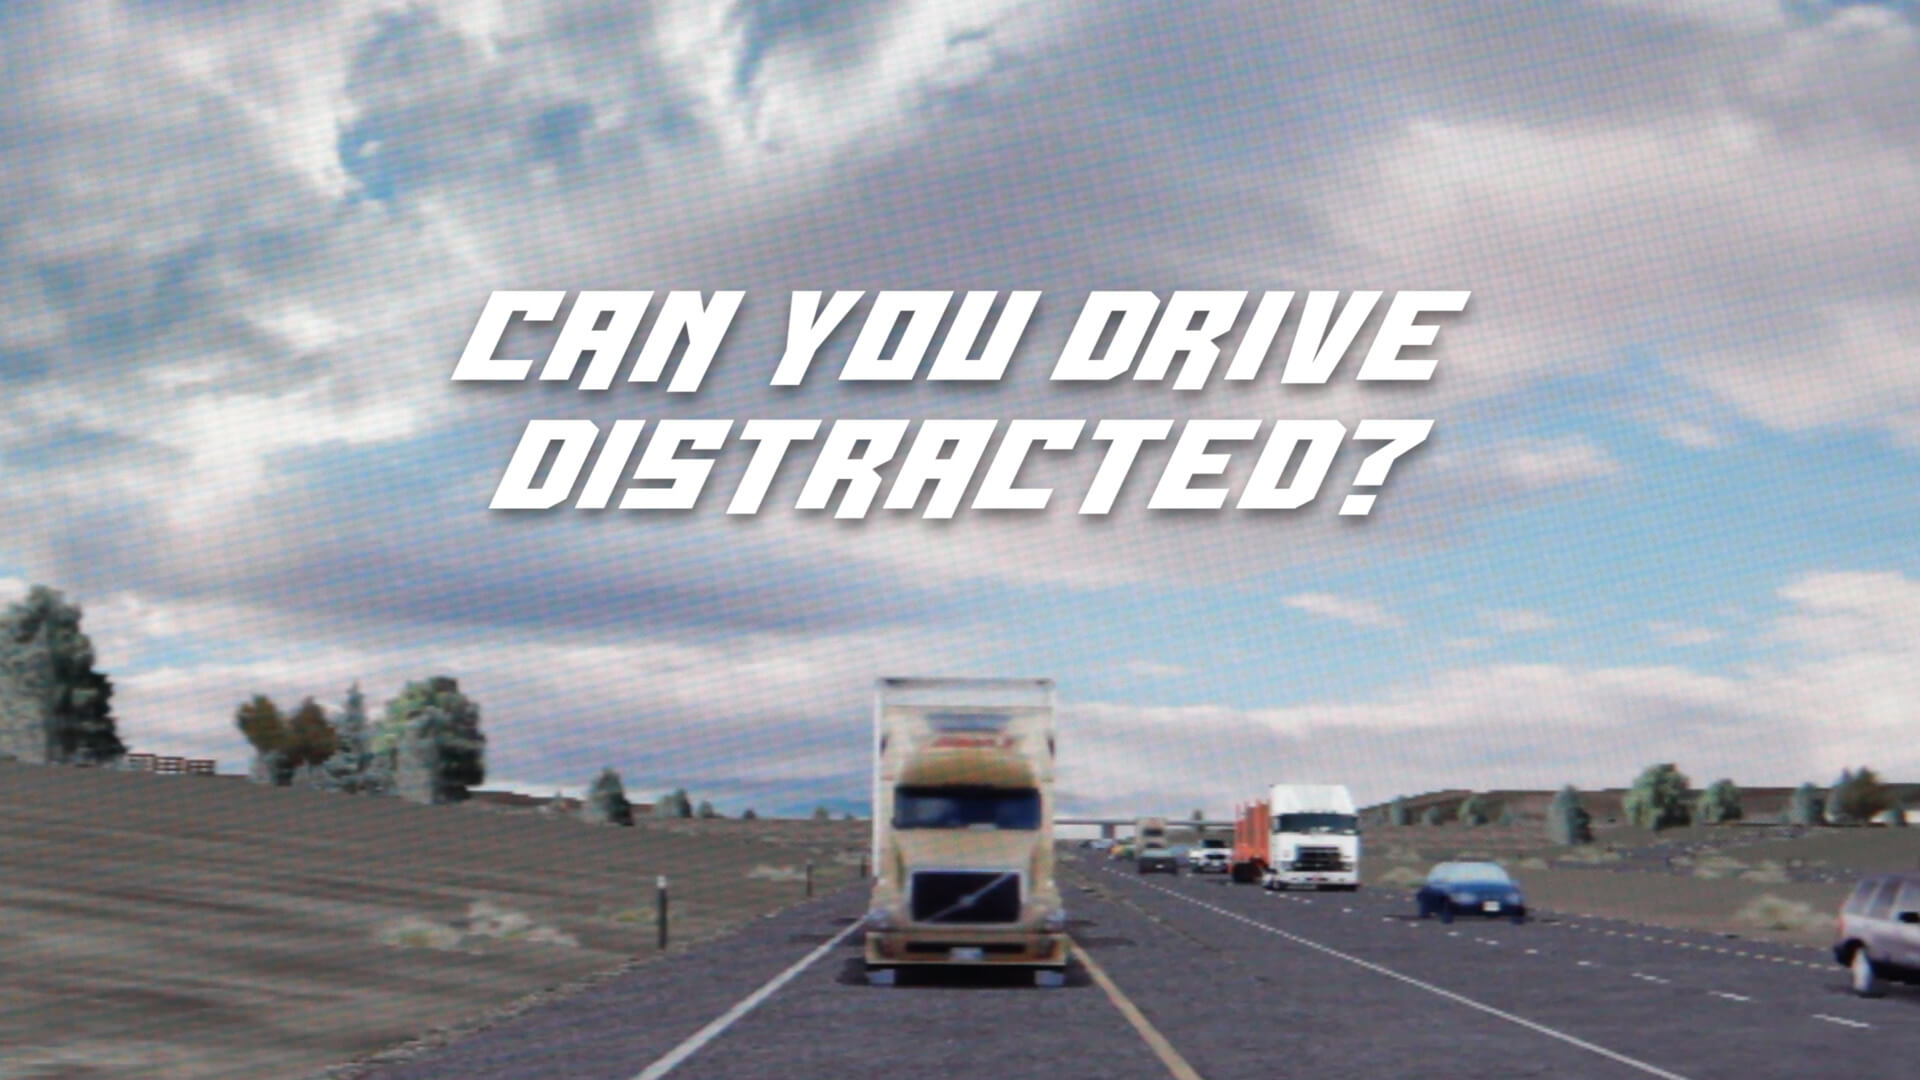 So, you think you can drive distracted?